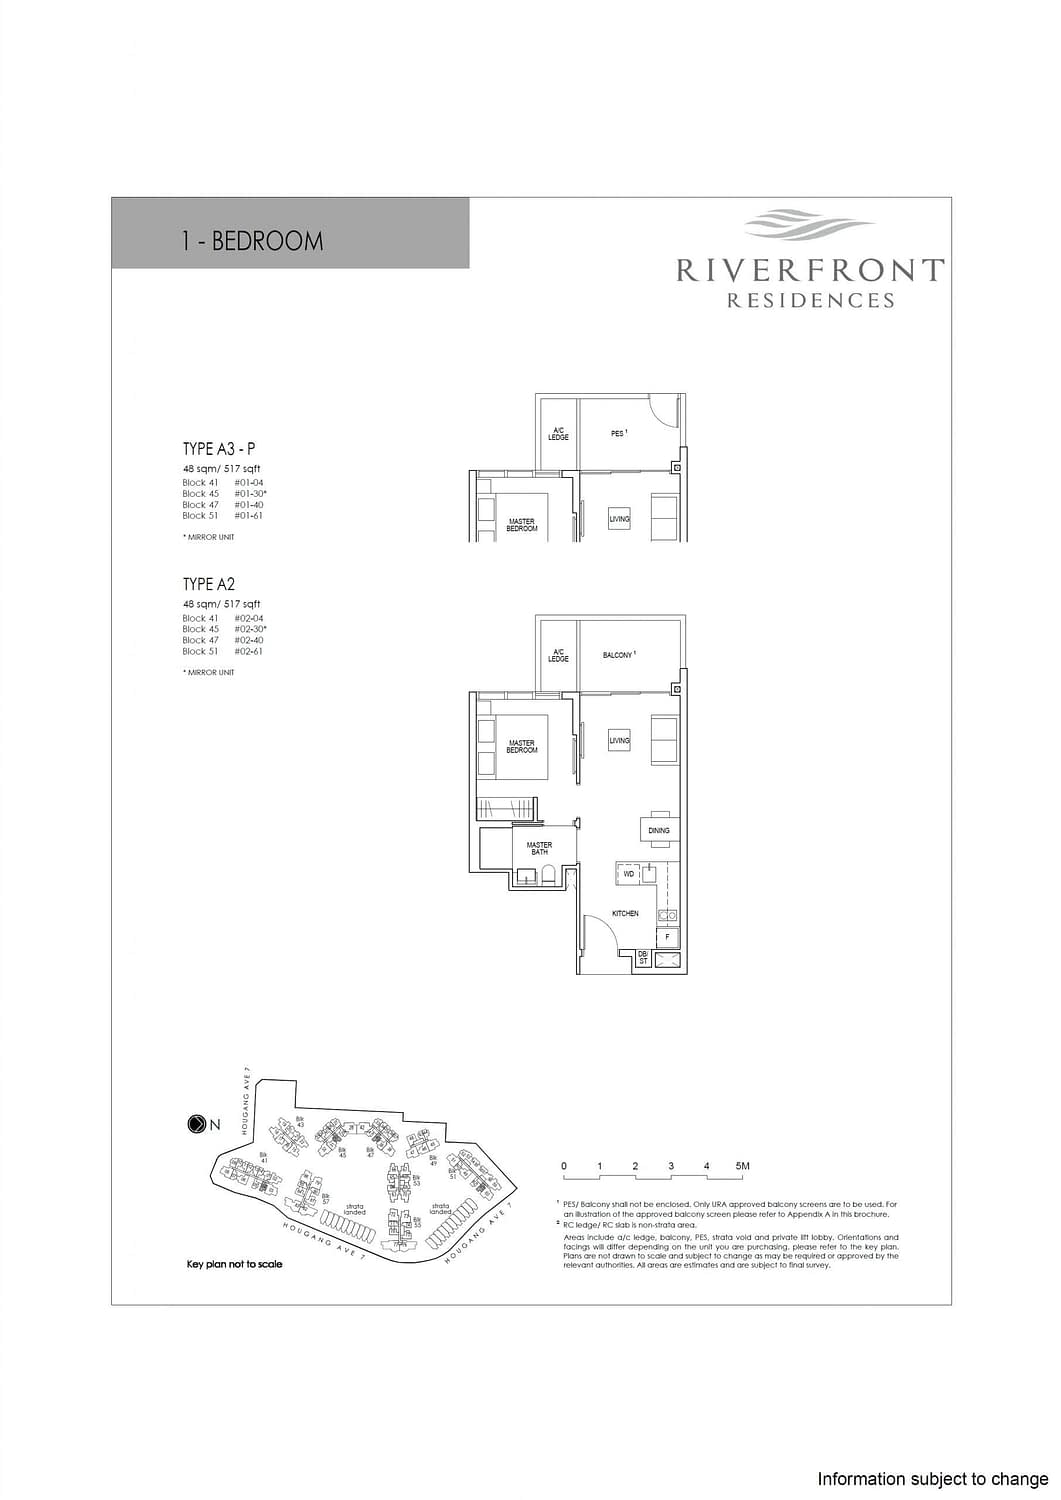 Riverfront Residences Riverfront Residences Floorplan A3 P scaled